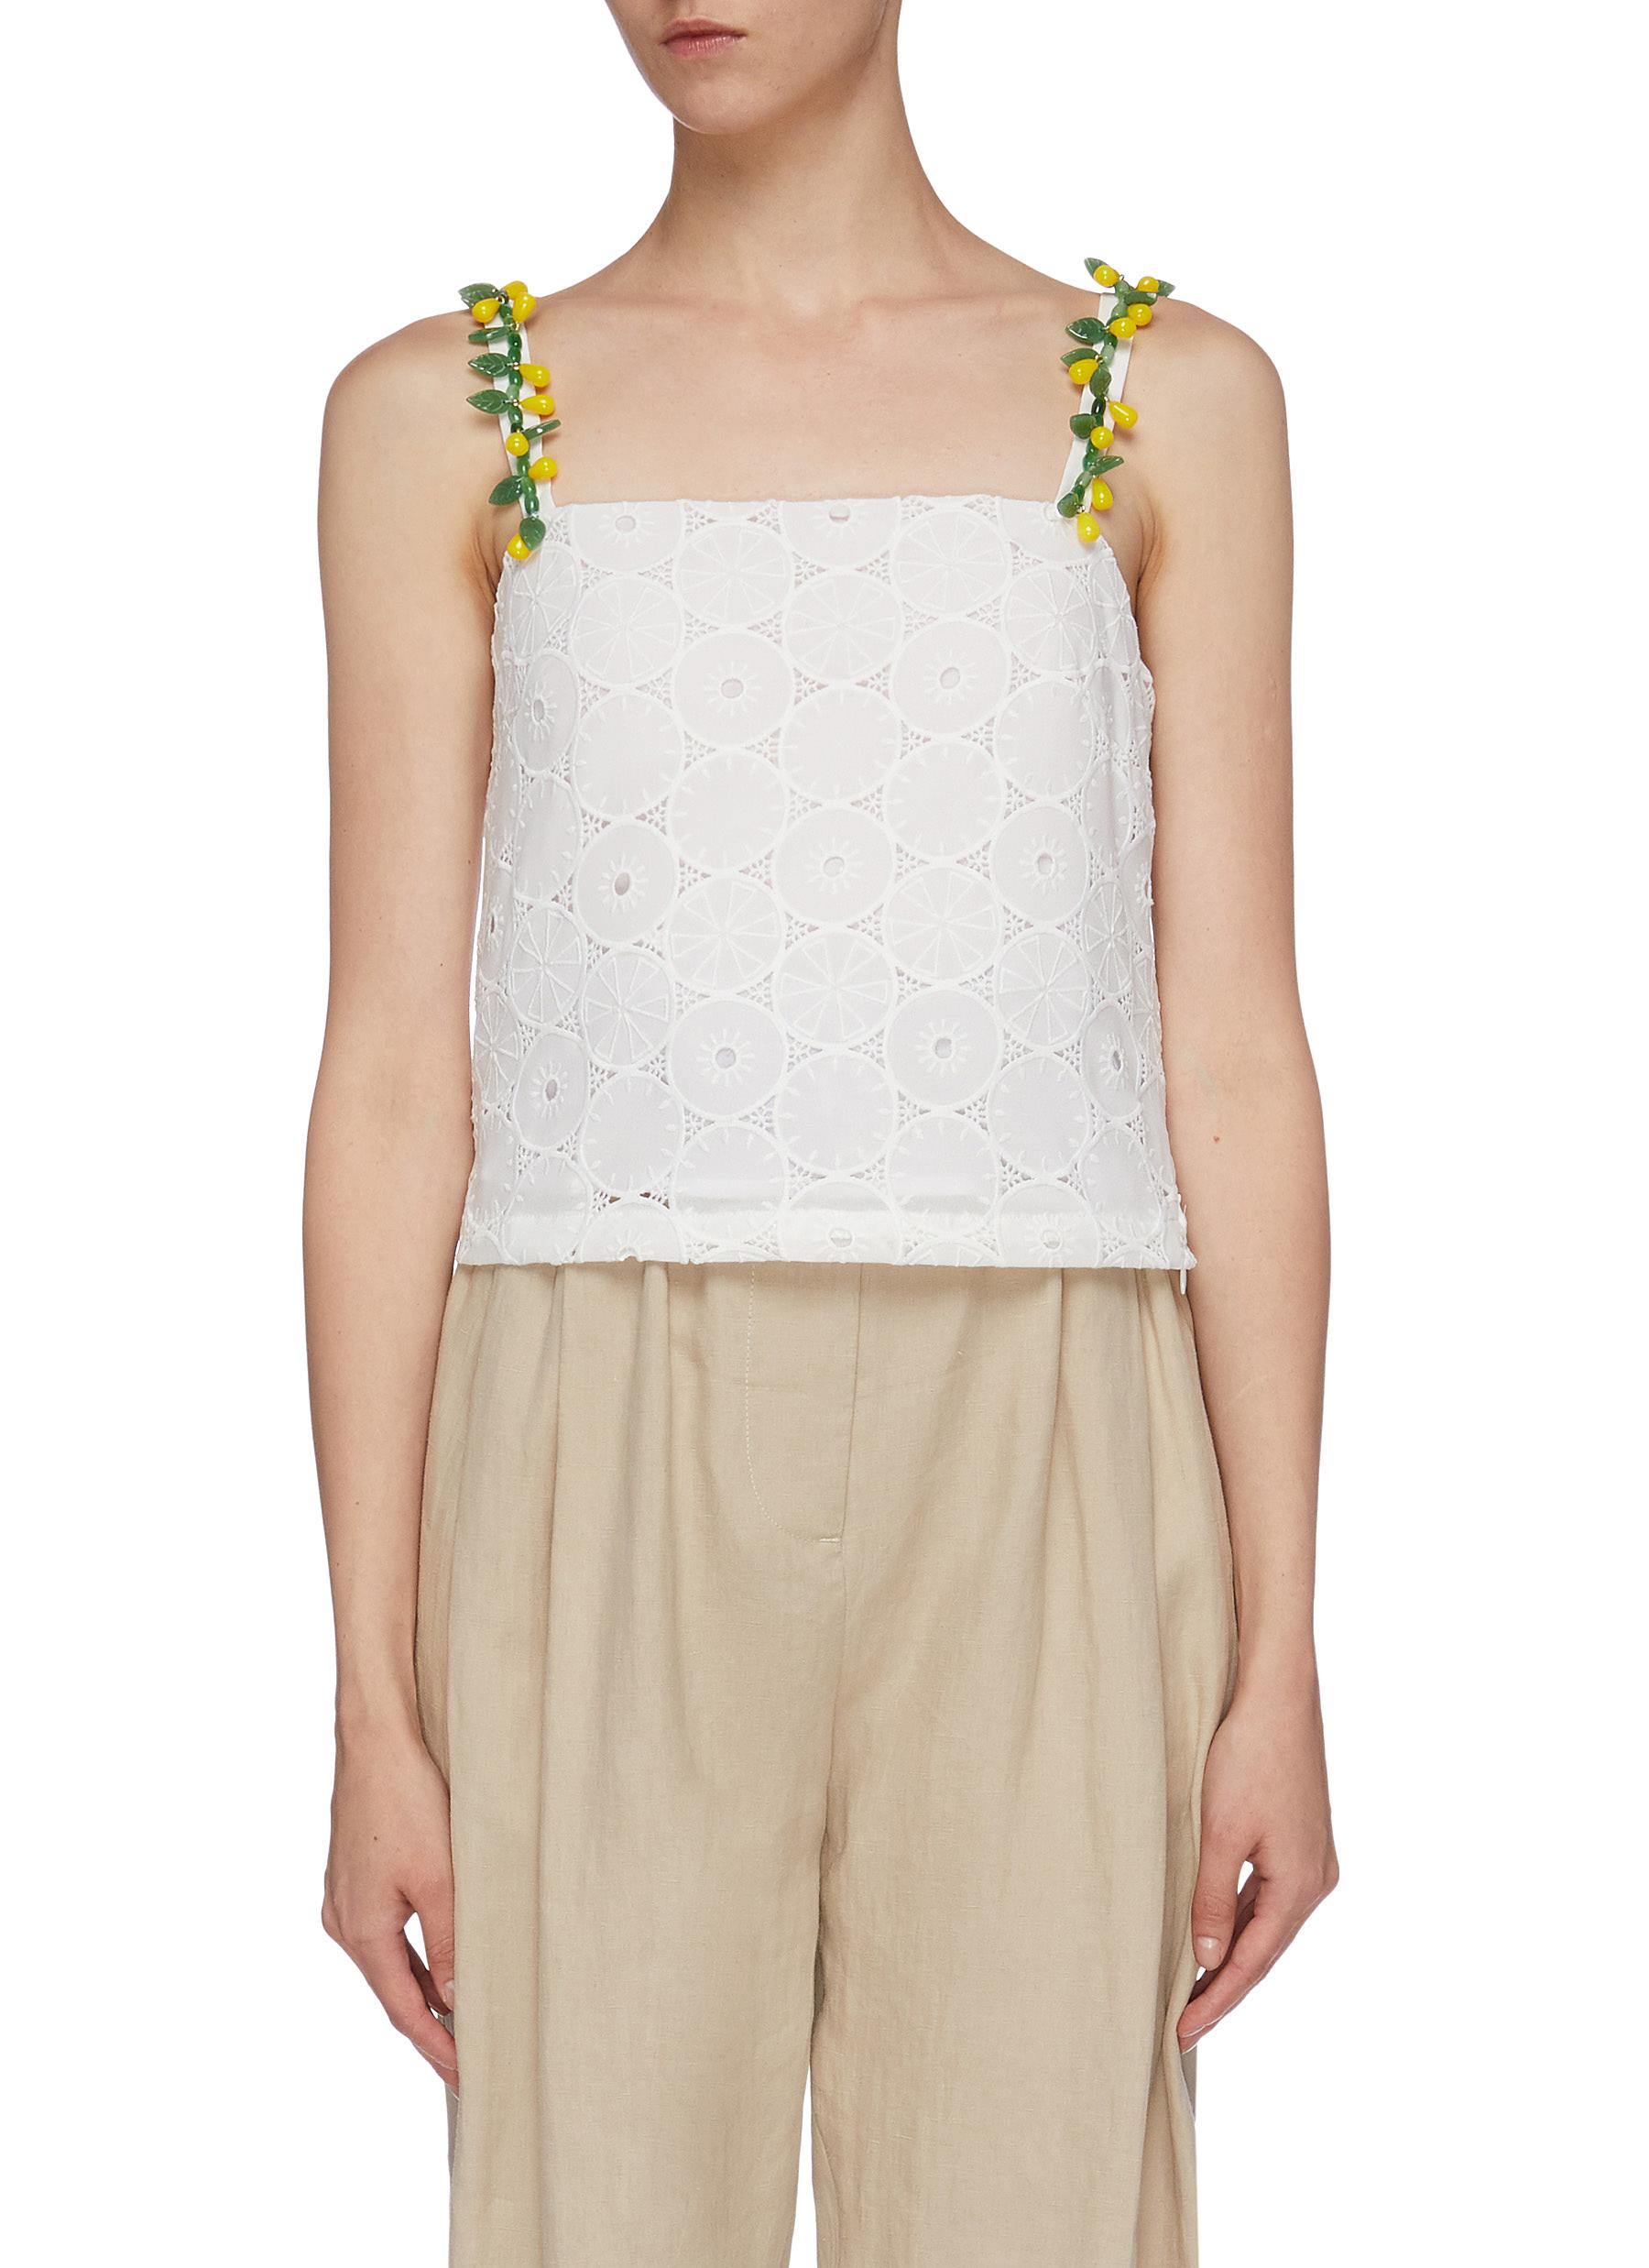 Maca glass bead strap broderie anglaise camisole top by Staud